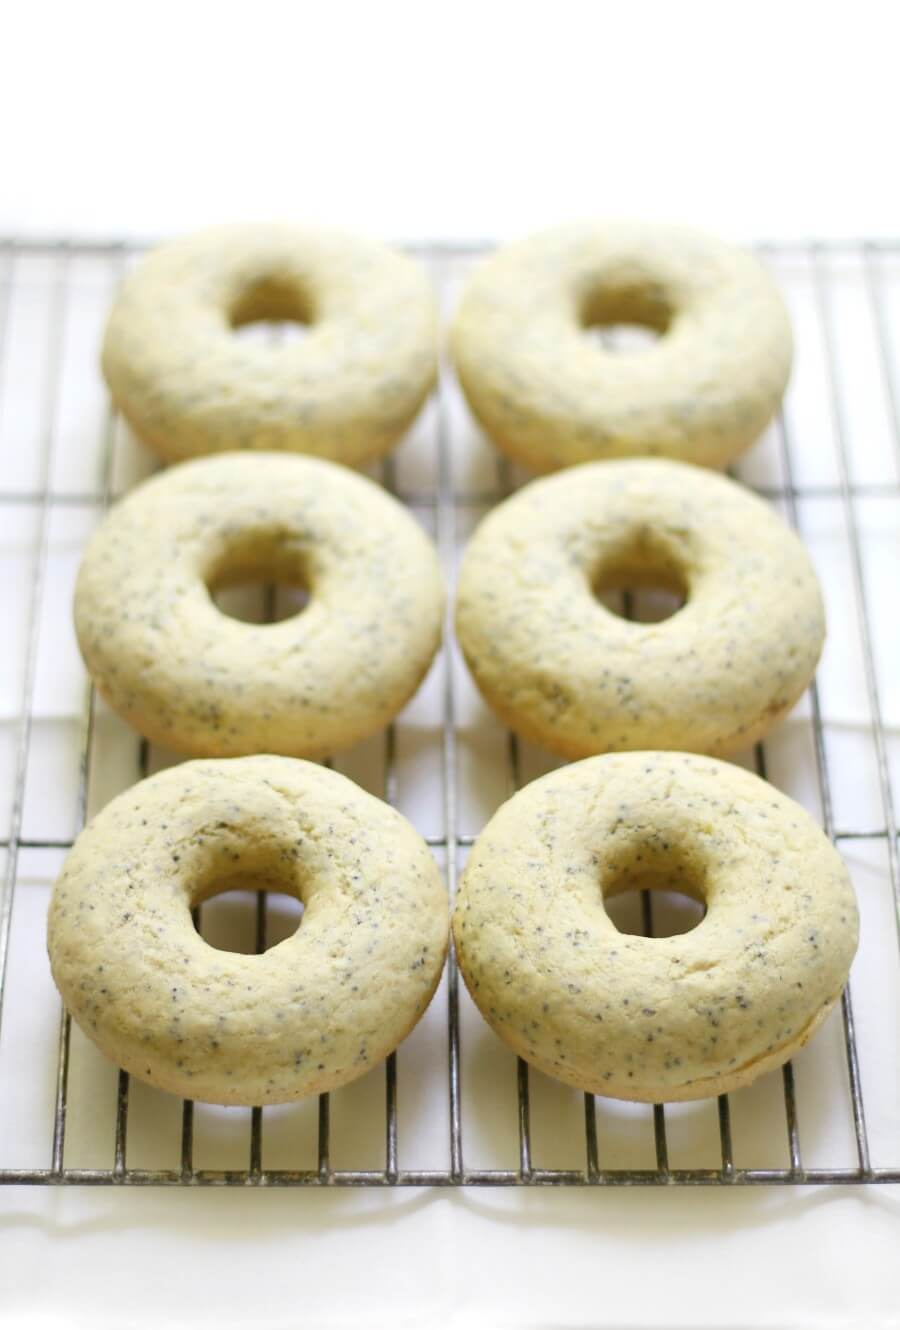 unglazed lemon poppy seed doughnuts on wire rack